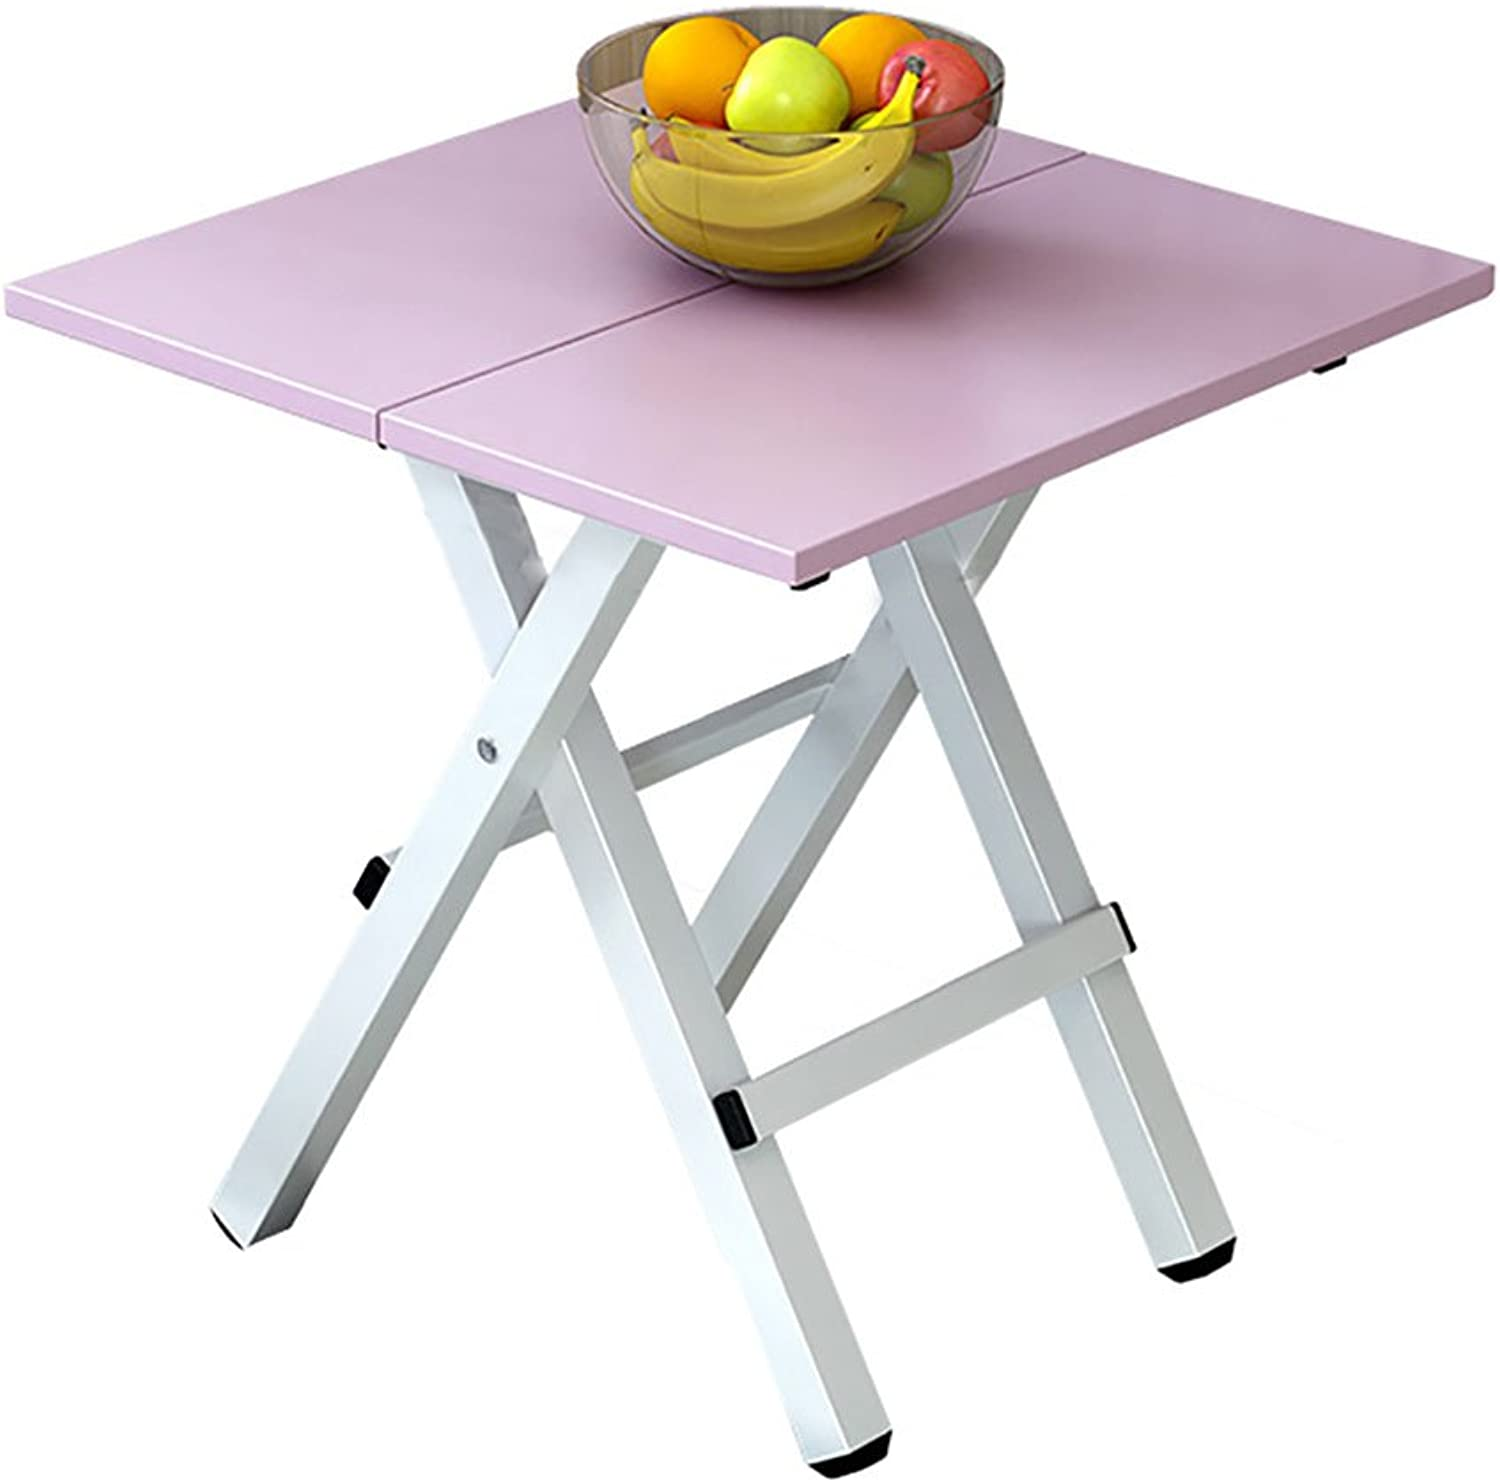 TY BEI Portable Small Folding - Dining Table Kitchen Camping - Wooden Square Foldable - Computer Desk - Coffee Table - with Metal Legs Without Inssizetion   (Size   48  48  51cm)